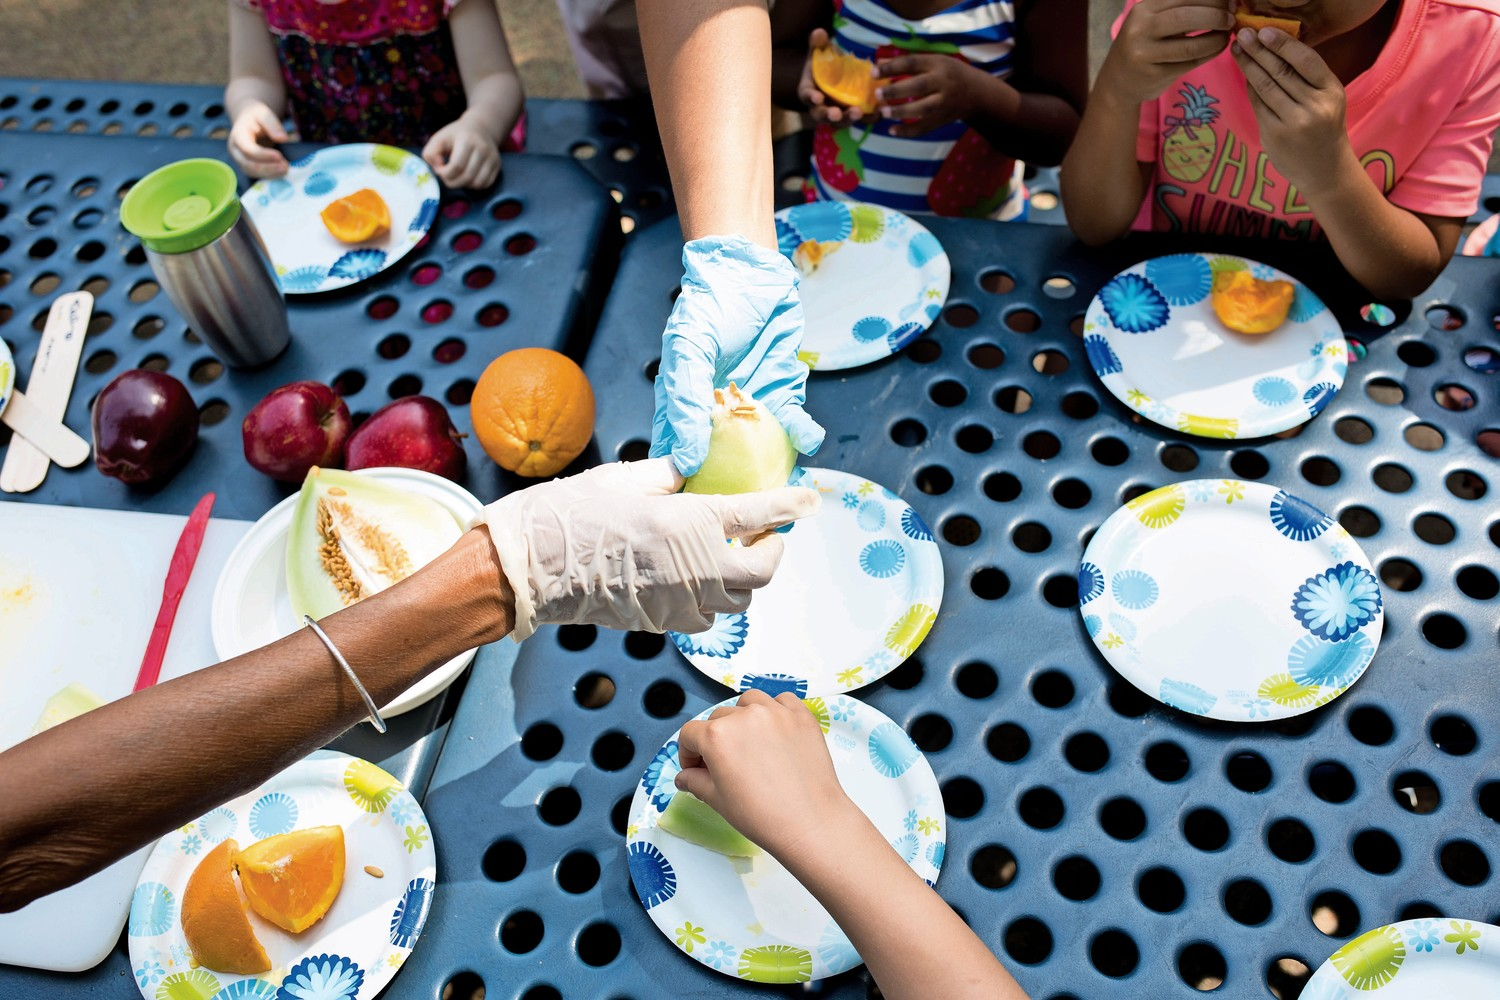 Teachers at Riverdale Presbyterian Church Nursery School pass around pieces of fruit for students to eat. After snacking on the fruit, the students will collect and plant the seeds in the garden as part of the school's 'Explorations in Nature' summer program.